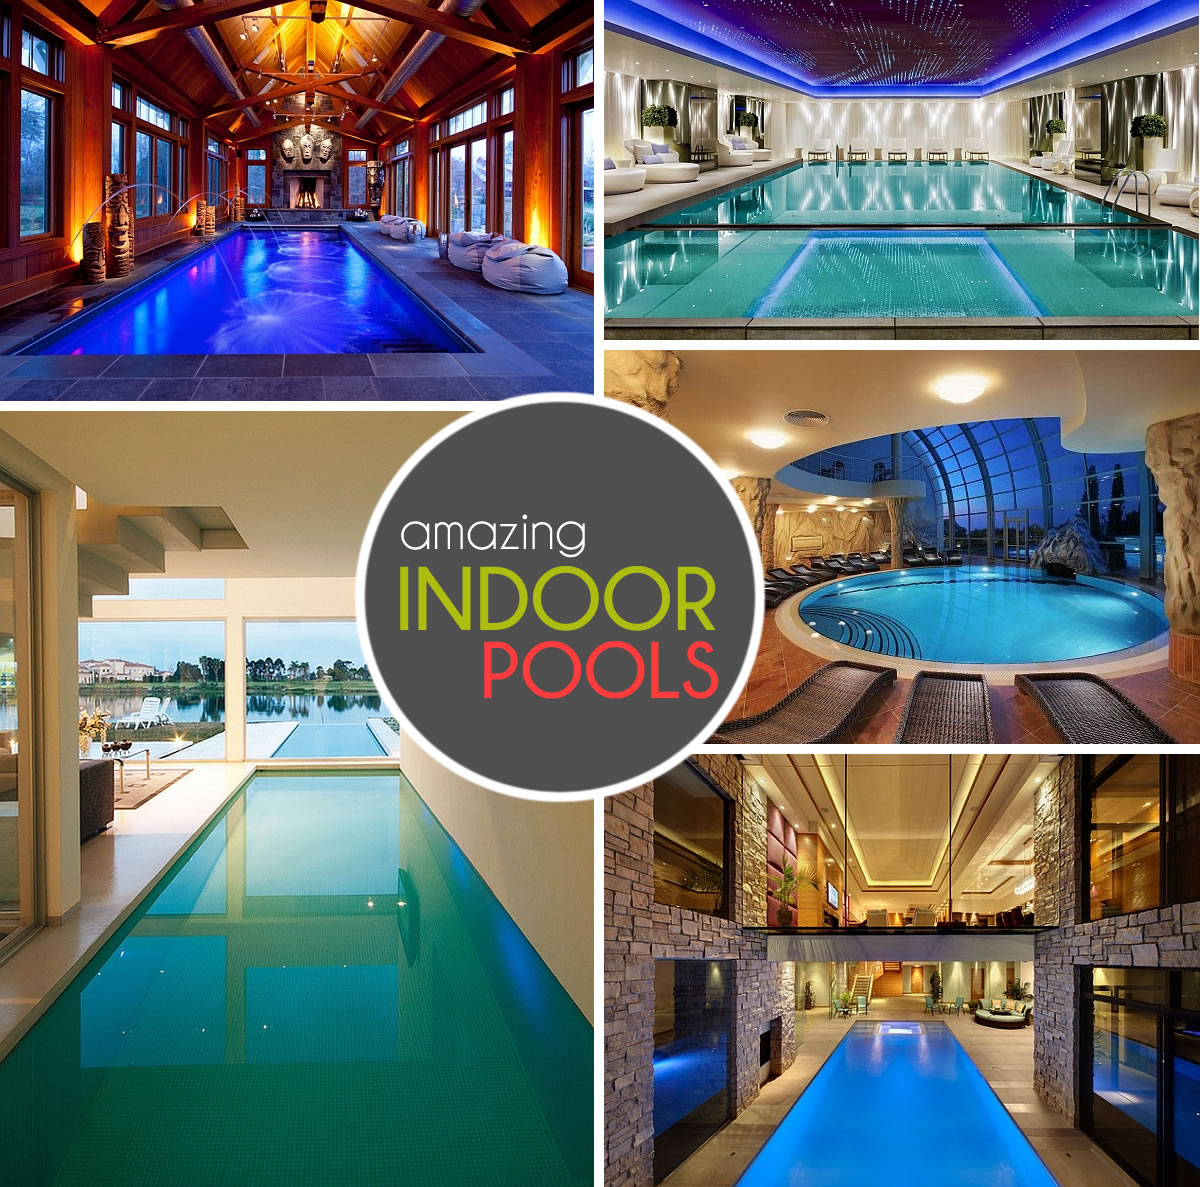 Mansion with indoor pool with diving board  50+ Indoor Swimming Pool Ideas: Taking a Dip in Style